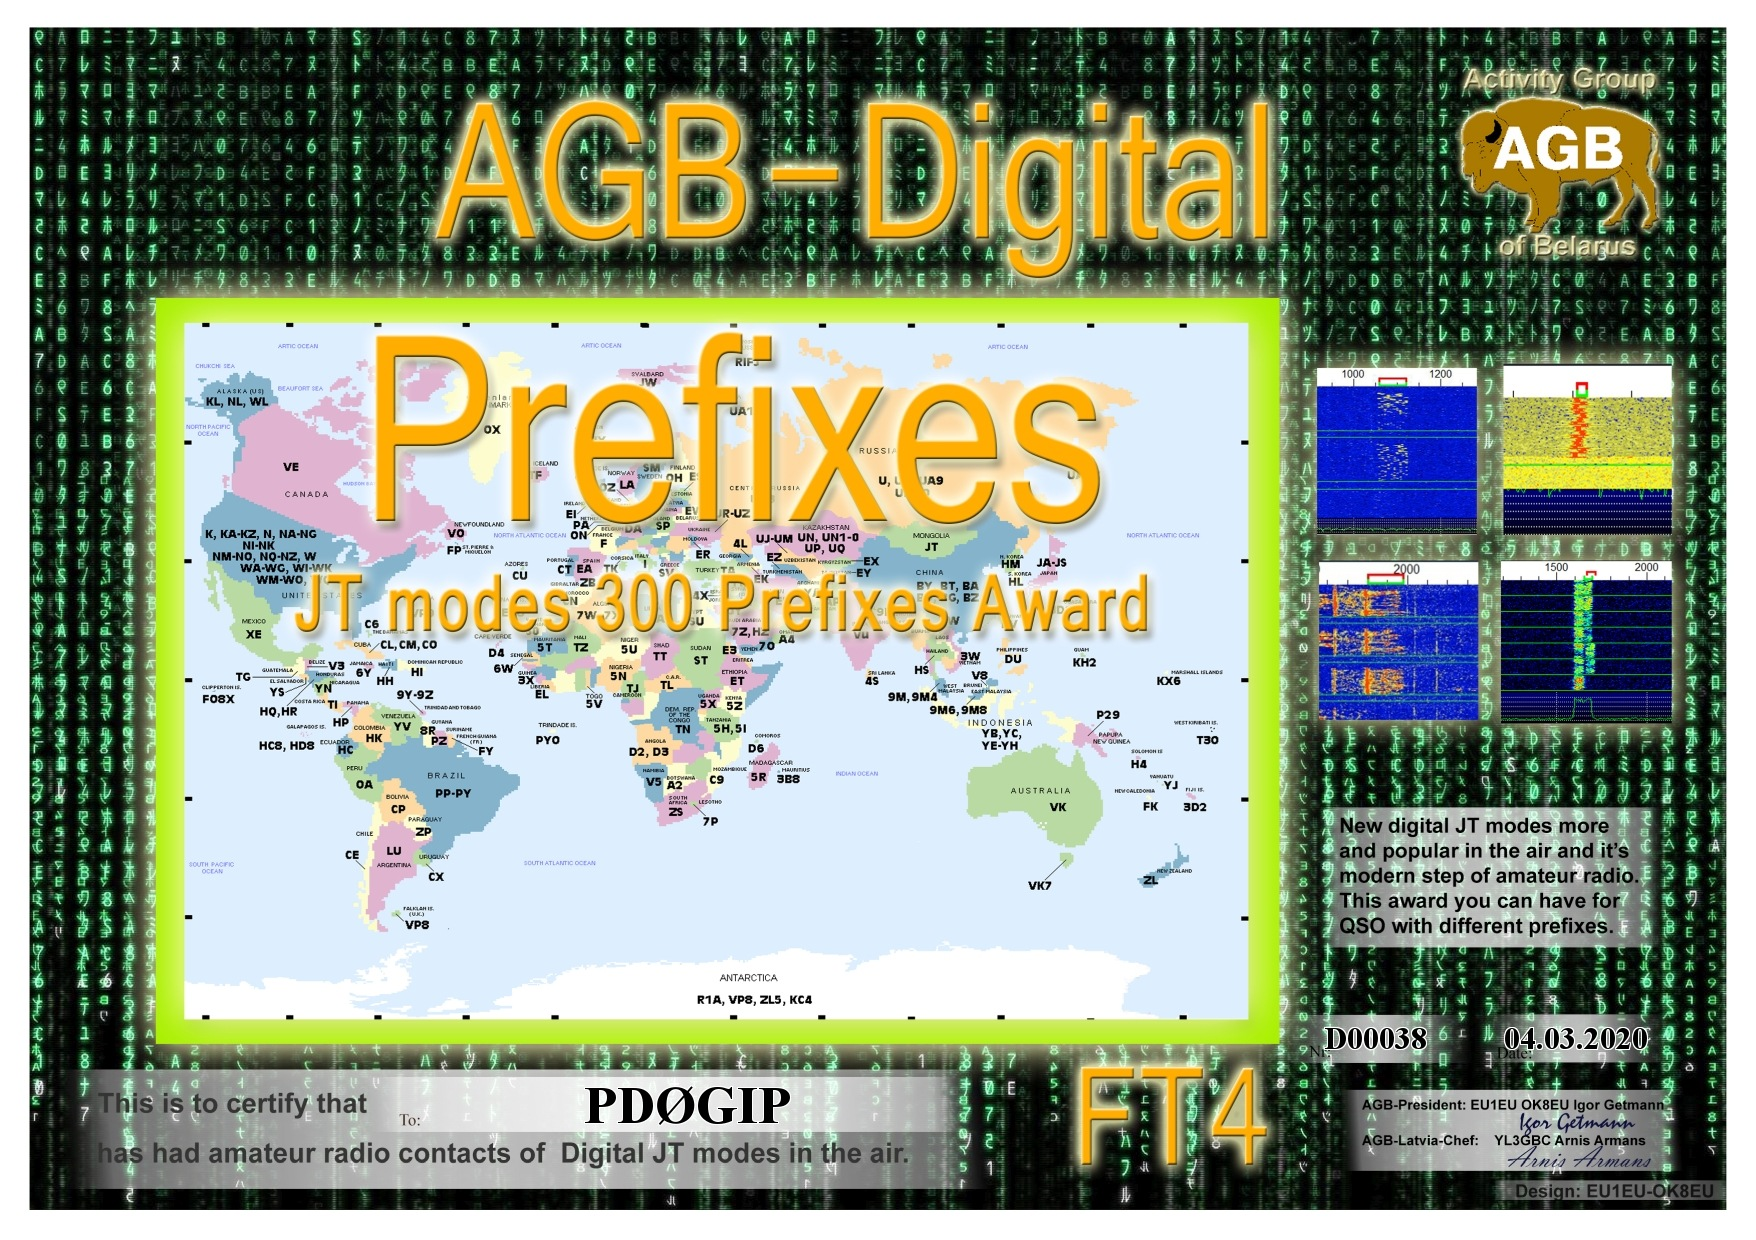 PD0GIP PREFIXES FT4 300 AGB